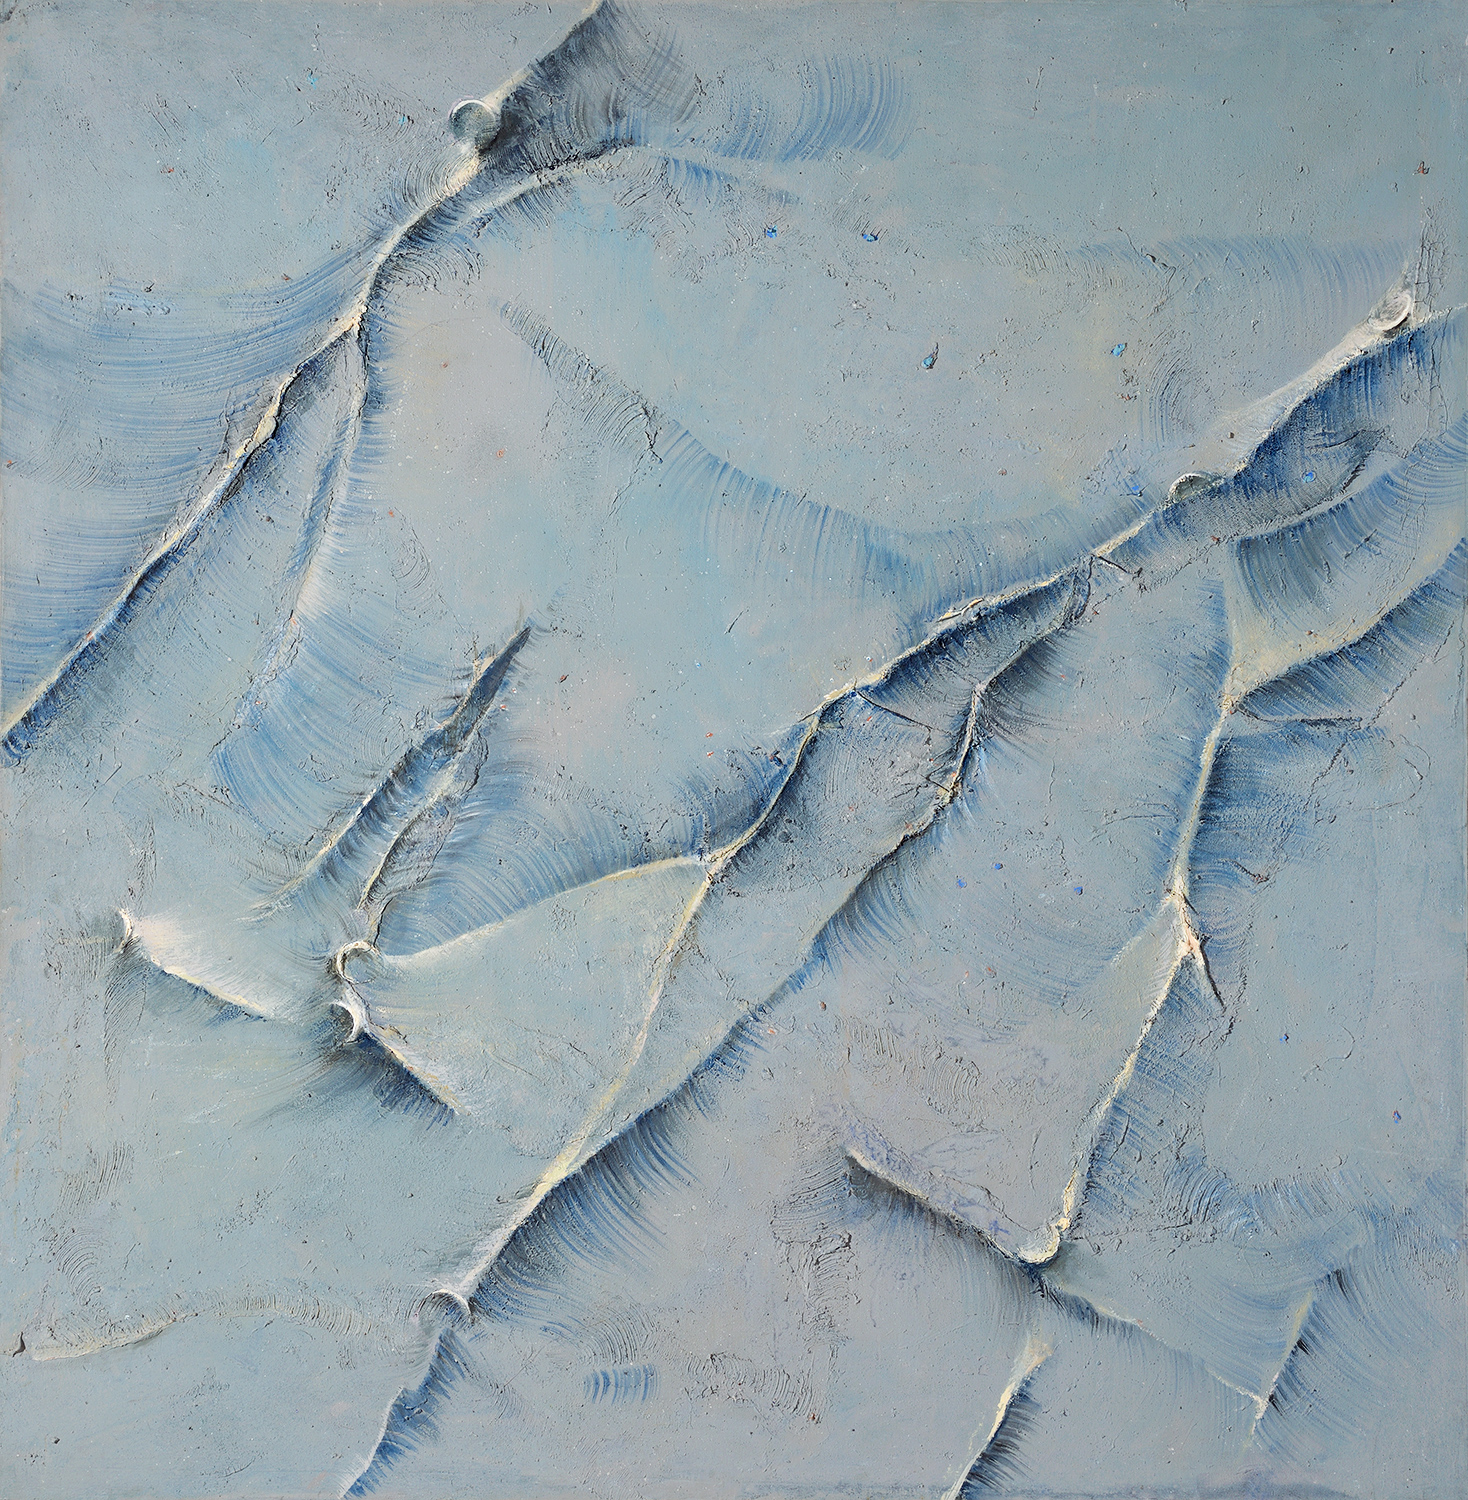 Downstream, Surface Tensions  2001-02, 210 x 206 cm